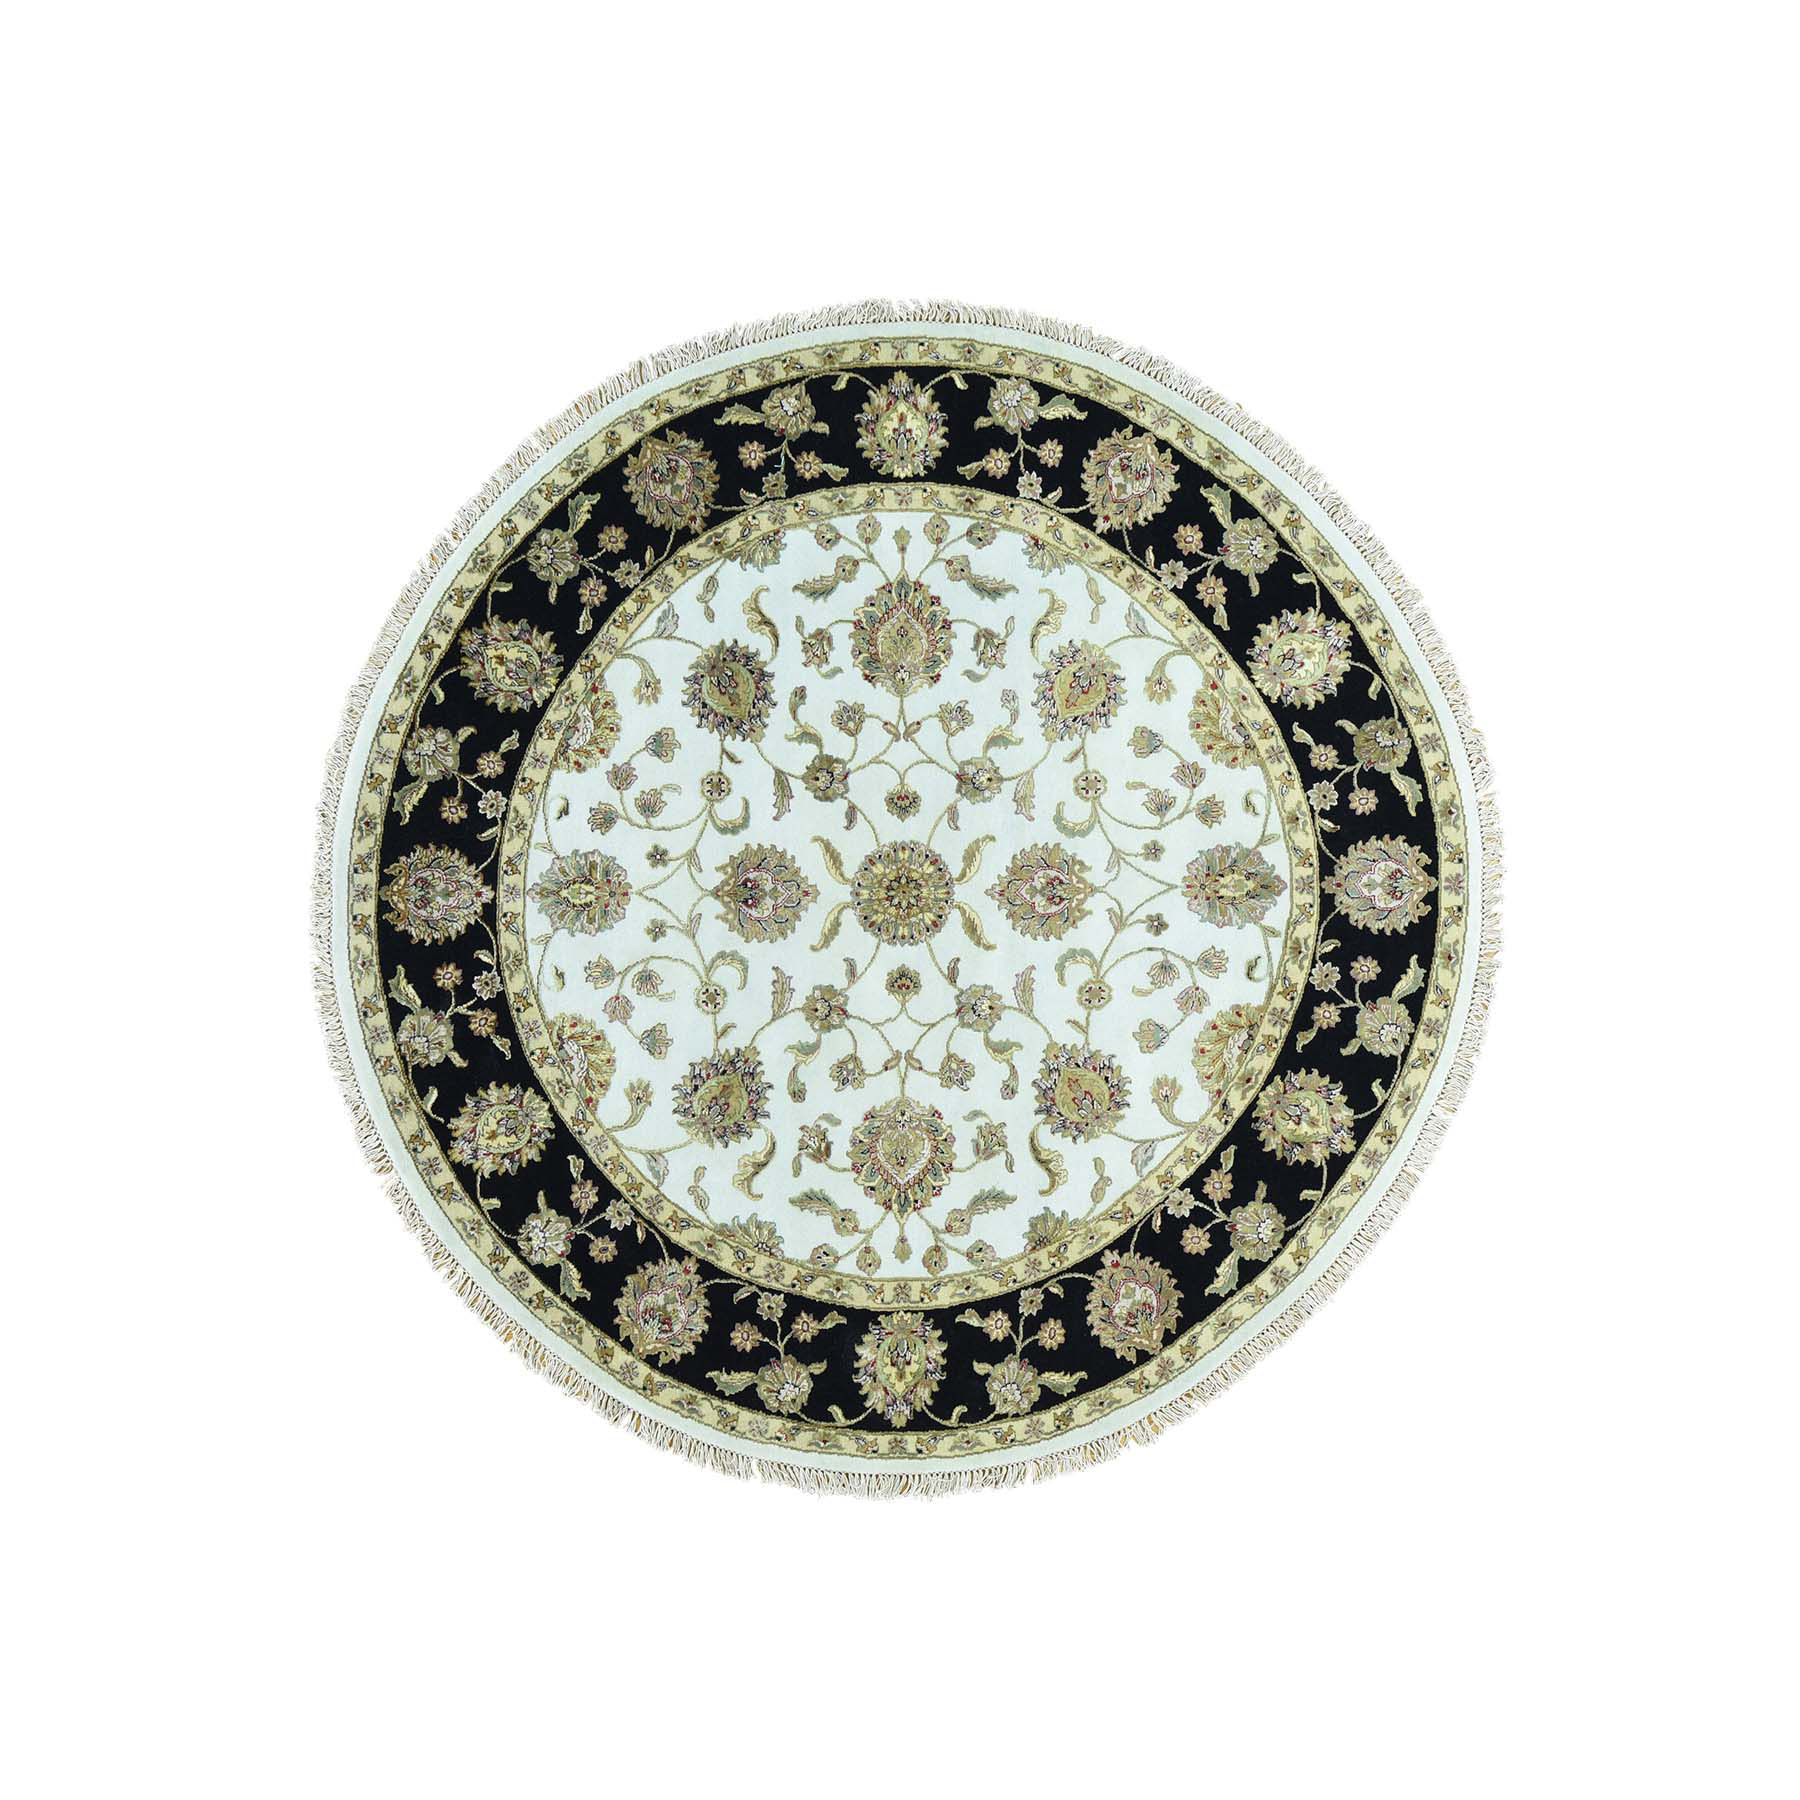 8'X8' Hand-Knotted Round Rajasthan Half Wool And Half Silk Oriental Rug moacbcad